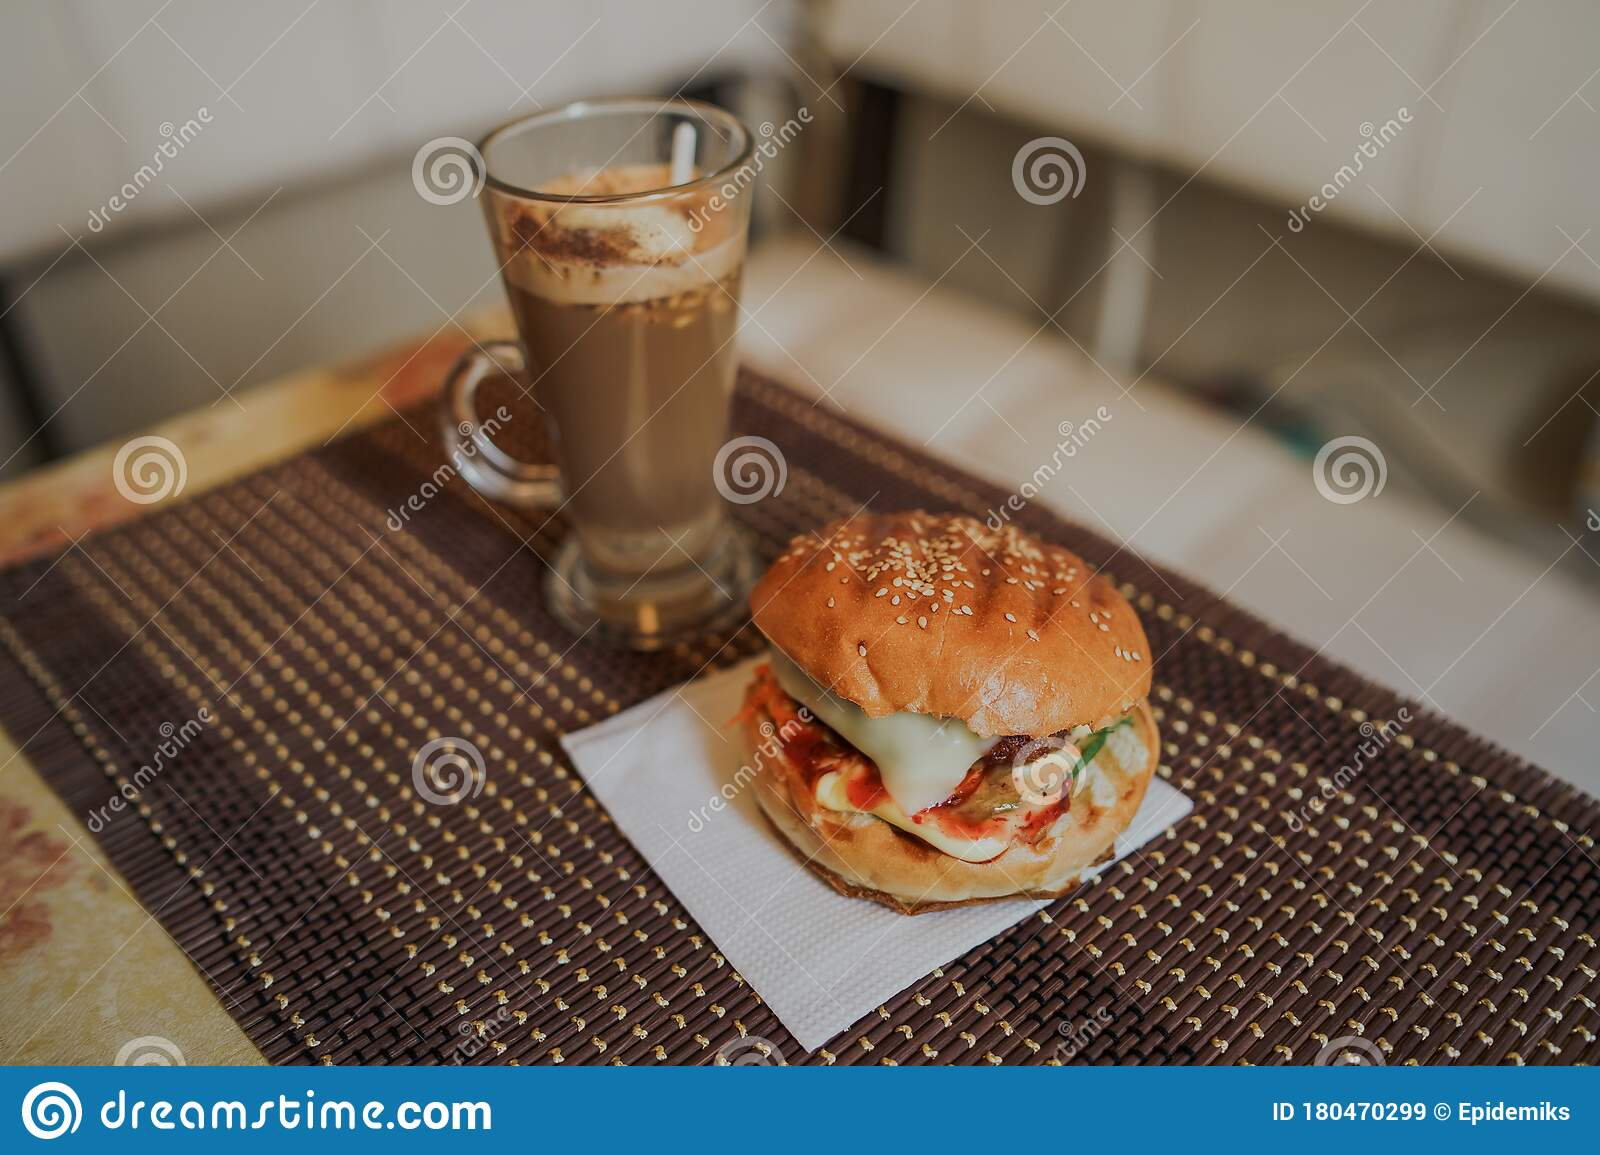 Food Photography Hot Cappuccino With Hamburger At The Table In Fast Food Cafe Cheeseburger And Coffee On The Table Stock Image Image Of Hamburger Gourmet 180470299